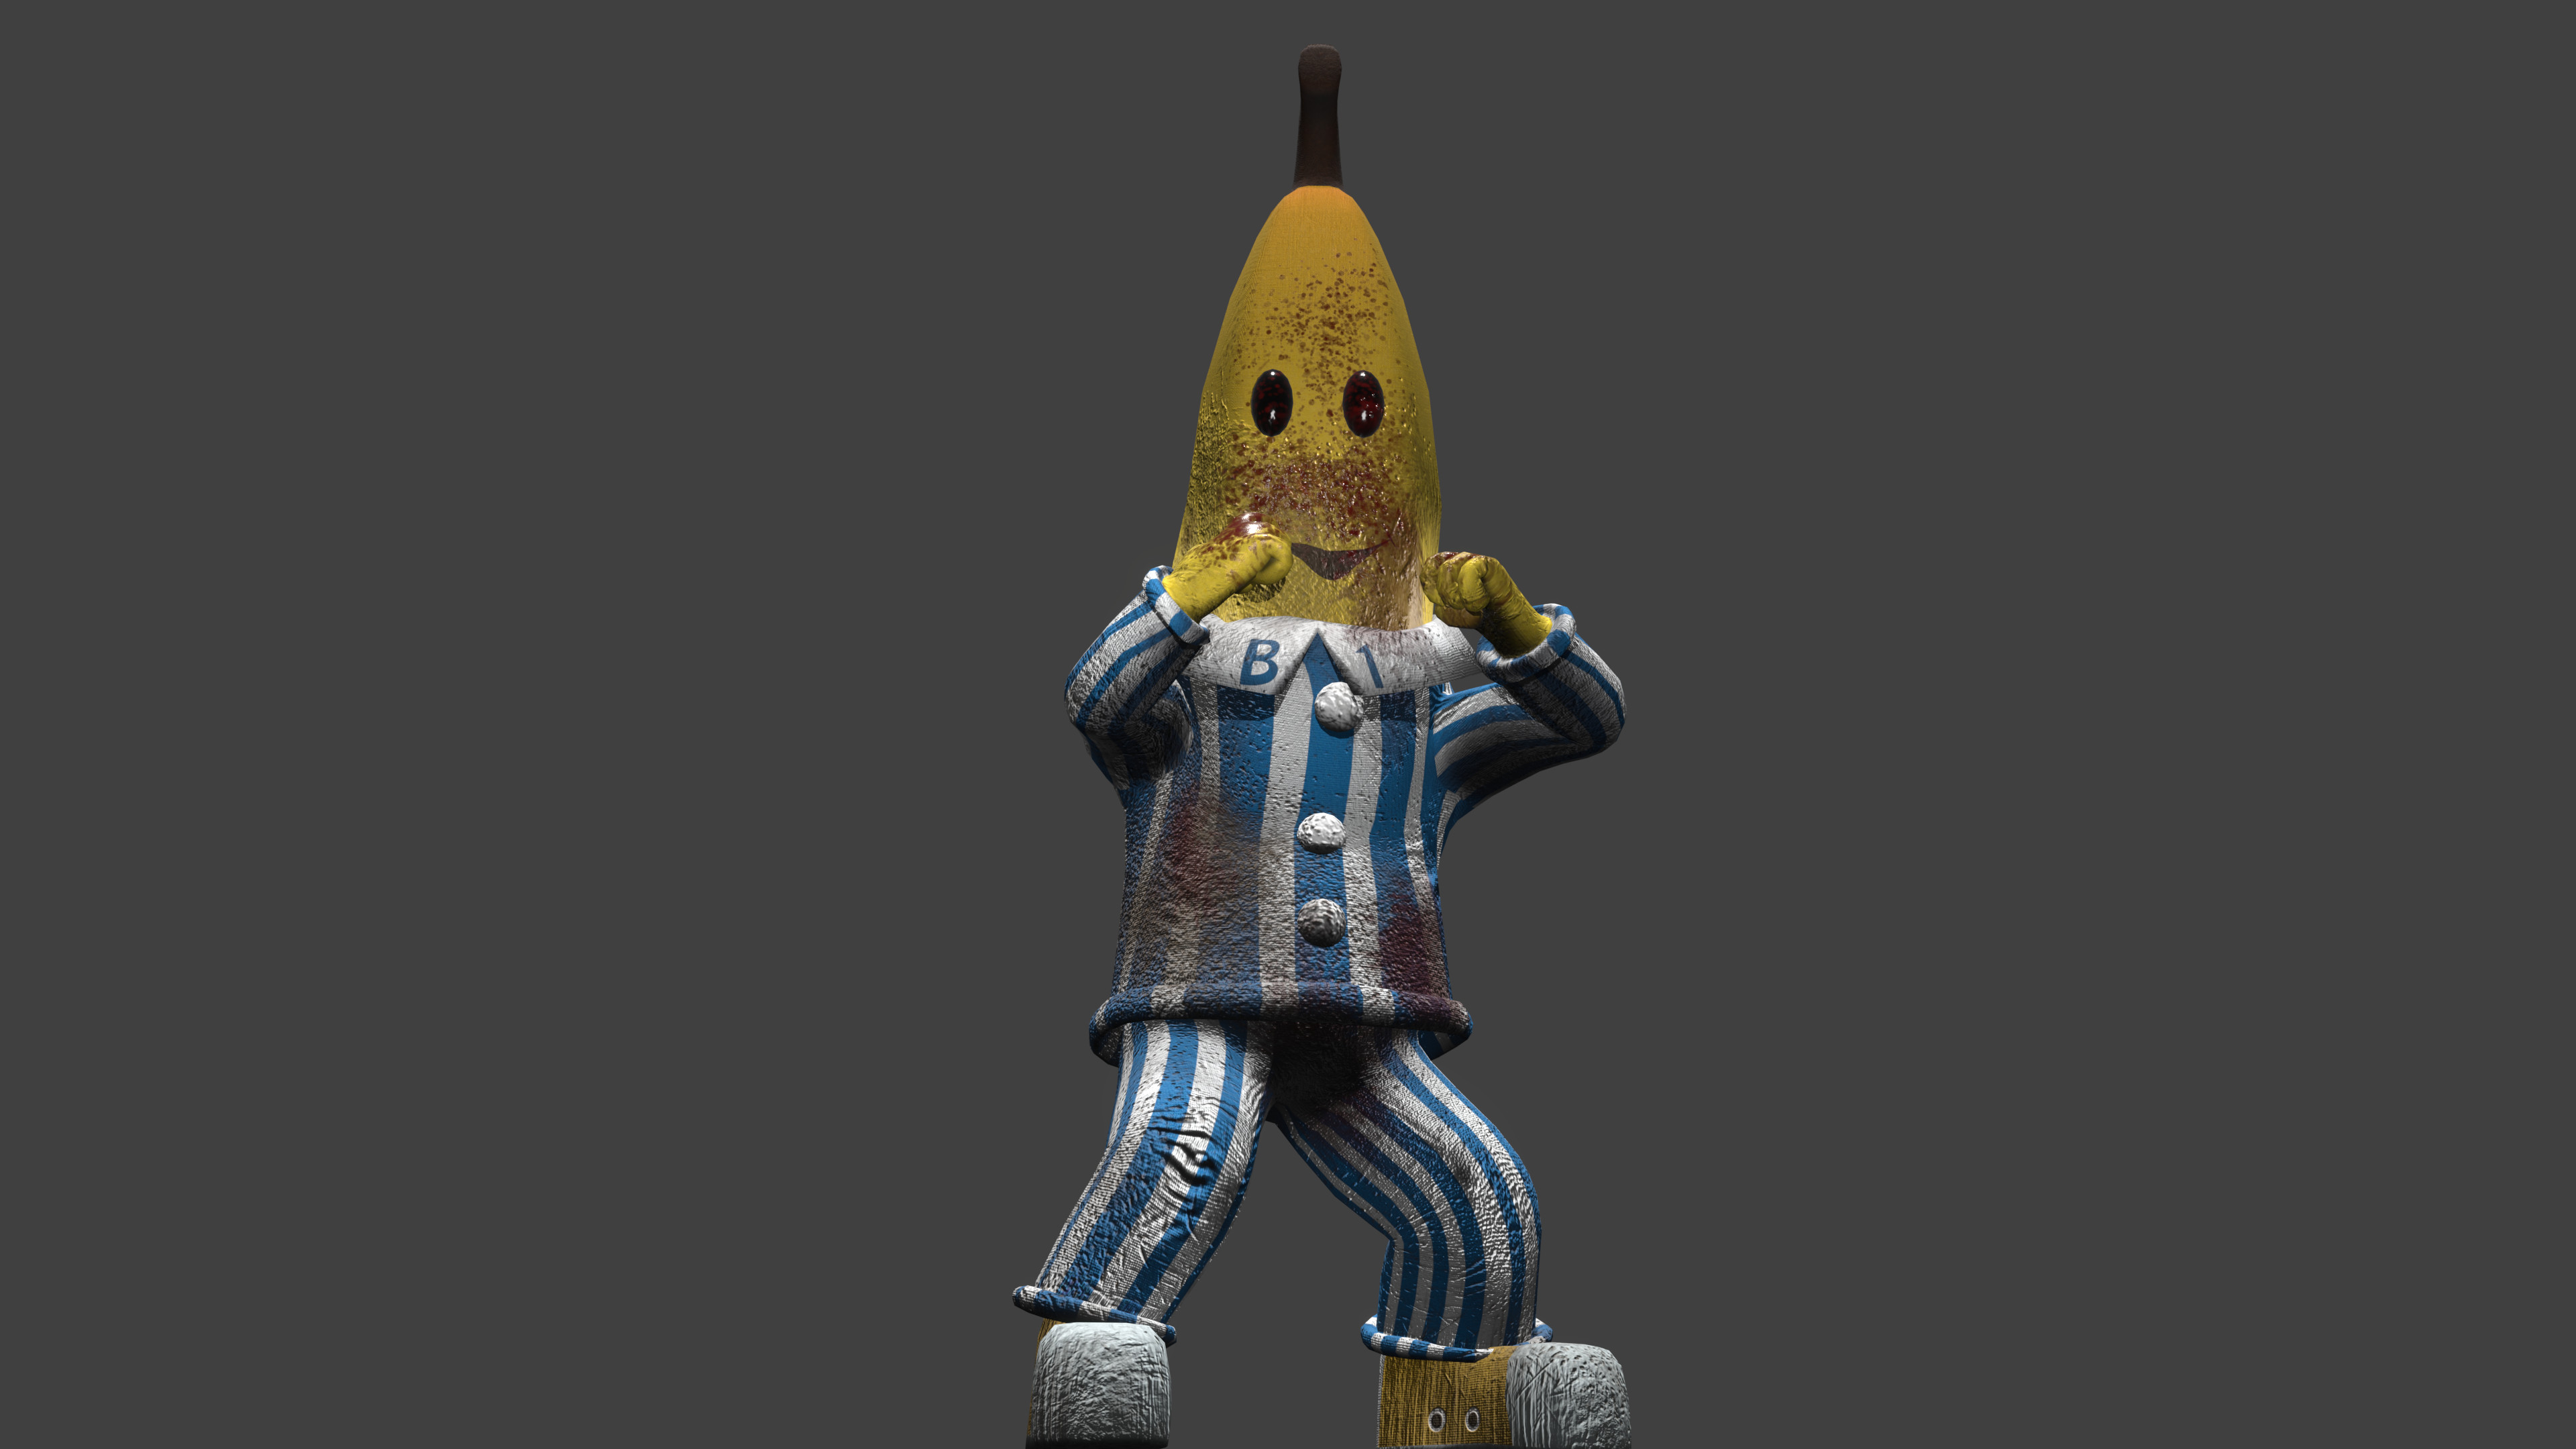 """Given the mascot suit nature of the character... I couldn't help myself. It was in the back of my head that """"someone will use this model for GTA mods"""" all along."""